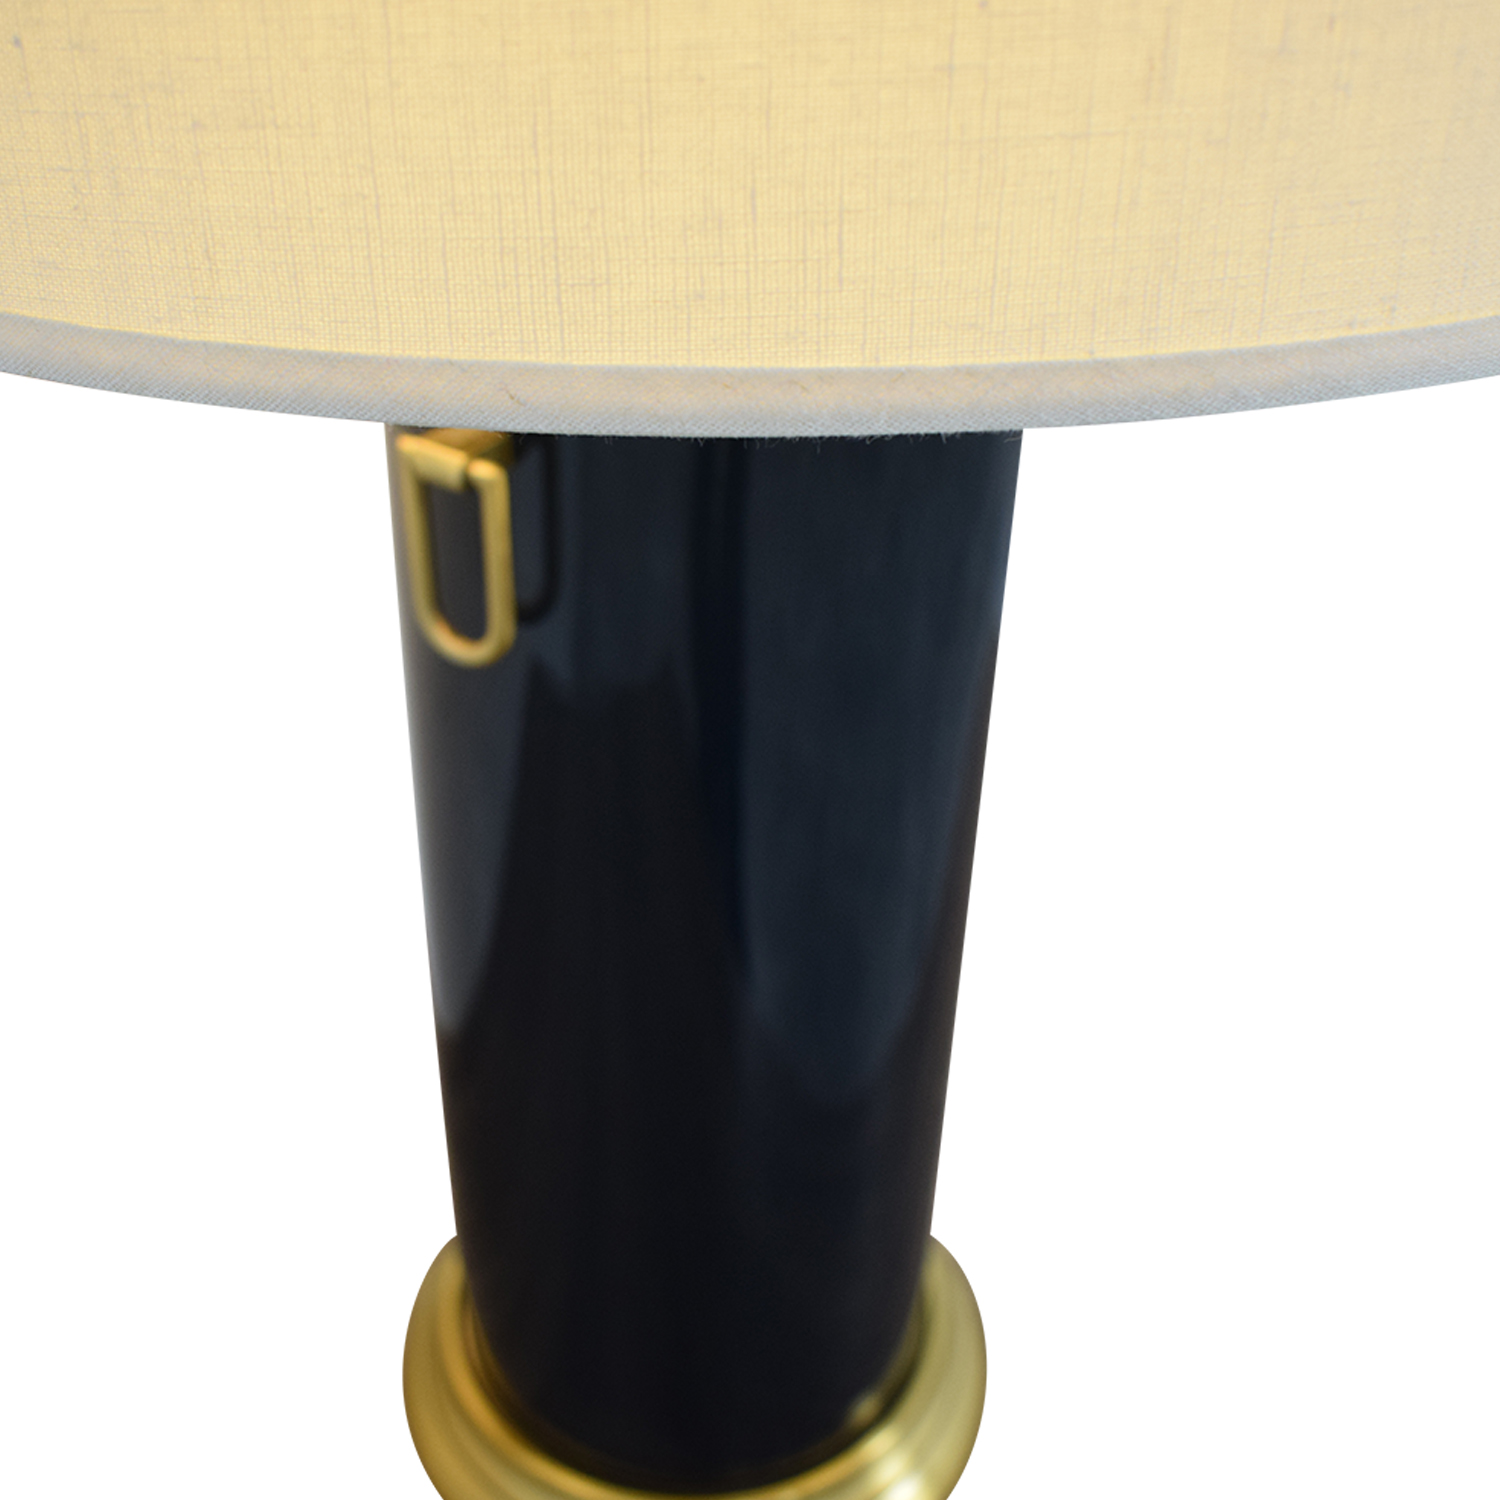 Pottery Barn Pottery Barn Navy Table Lamp for sale